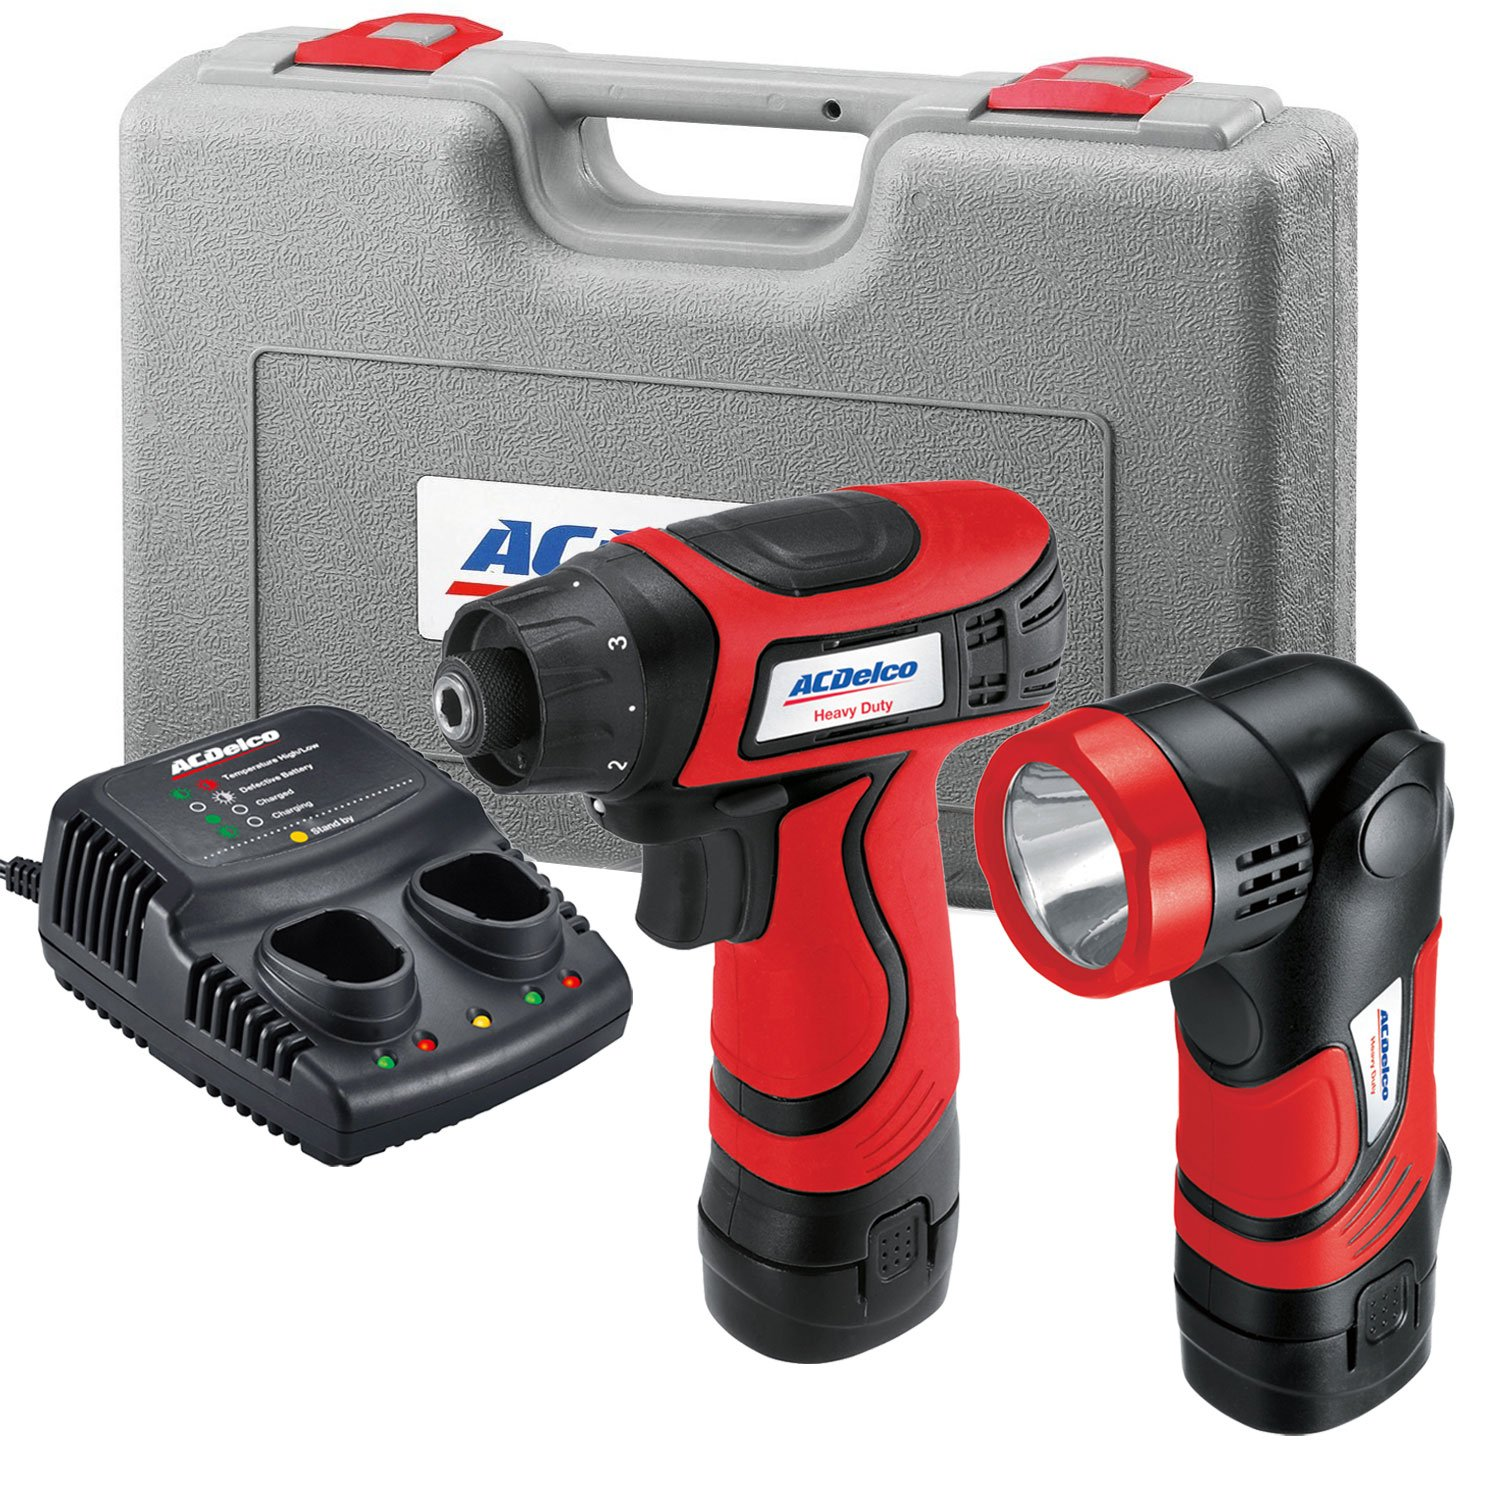 AcDelco ARD847L Cordless 8V Li-ion Drill/Driver Set Combo Kit with Case, LED Work Light, 2-Port Charger, and 2 Batteries by ACDelco